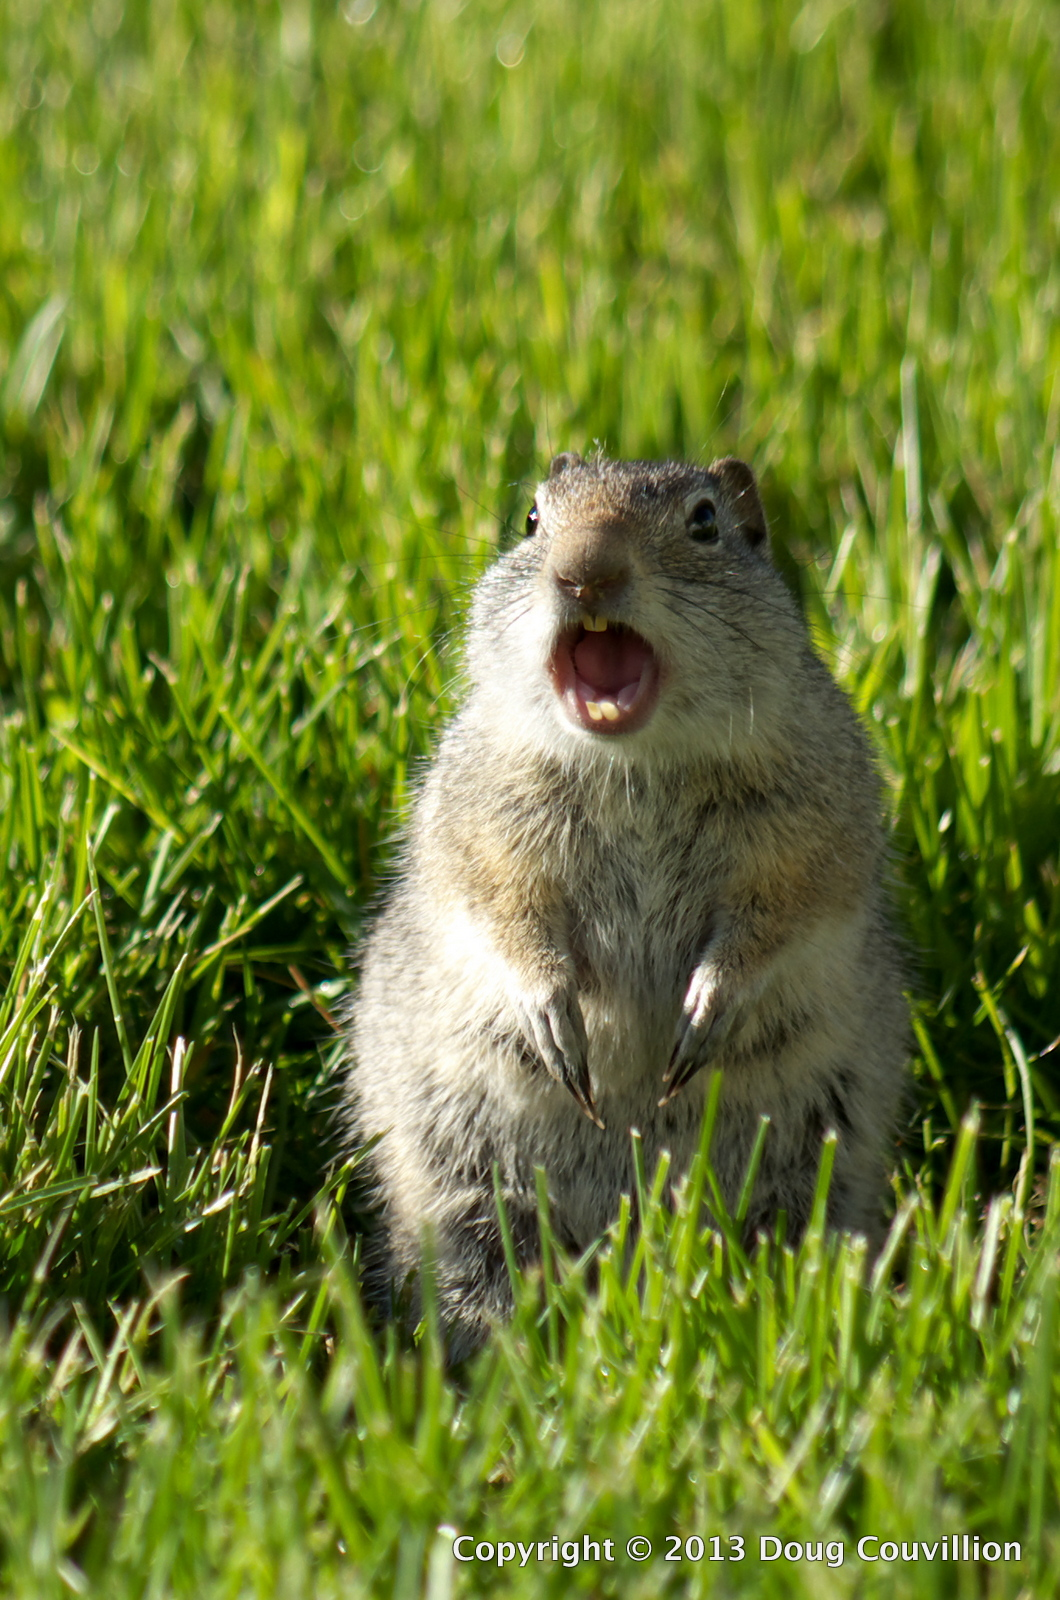 photograph of a ground squirrel barking in anger in Yellowstone National Park